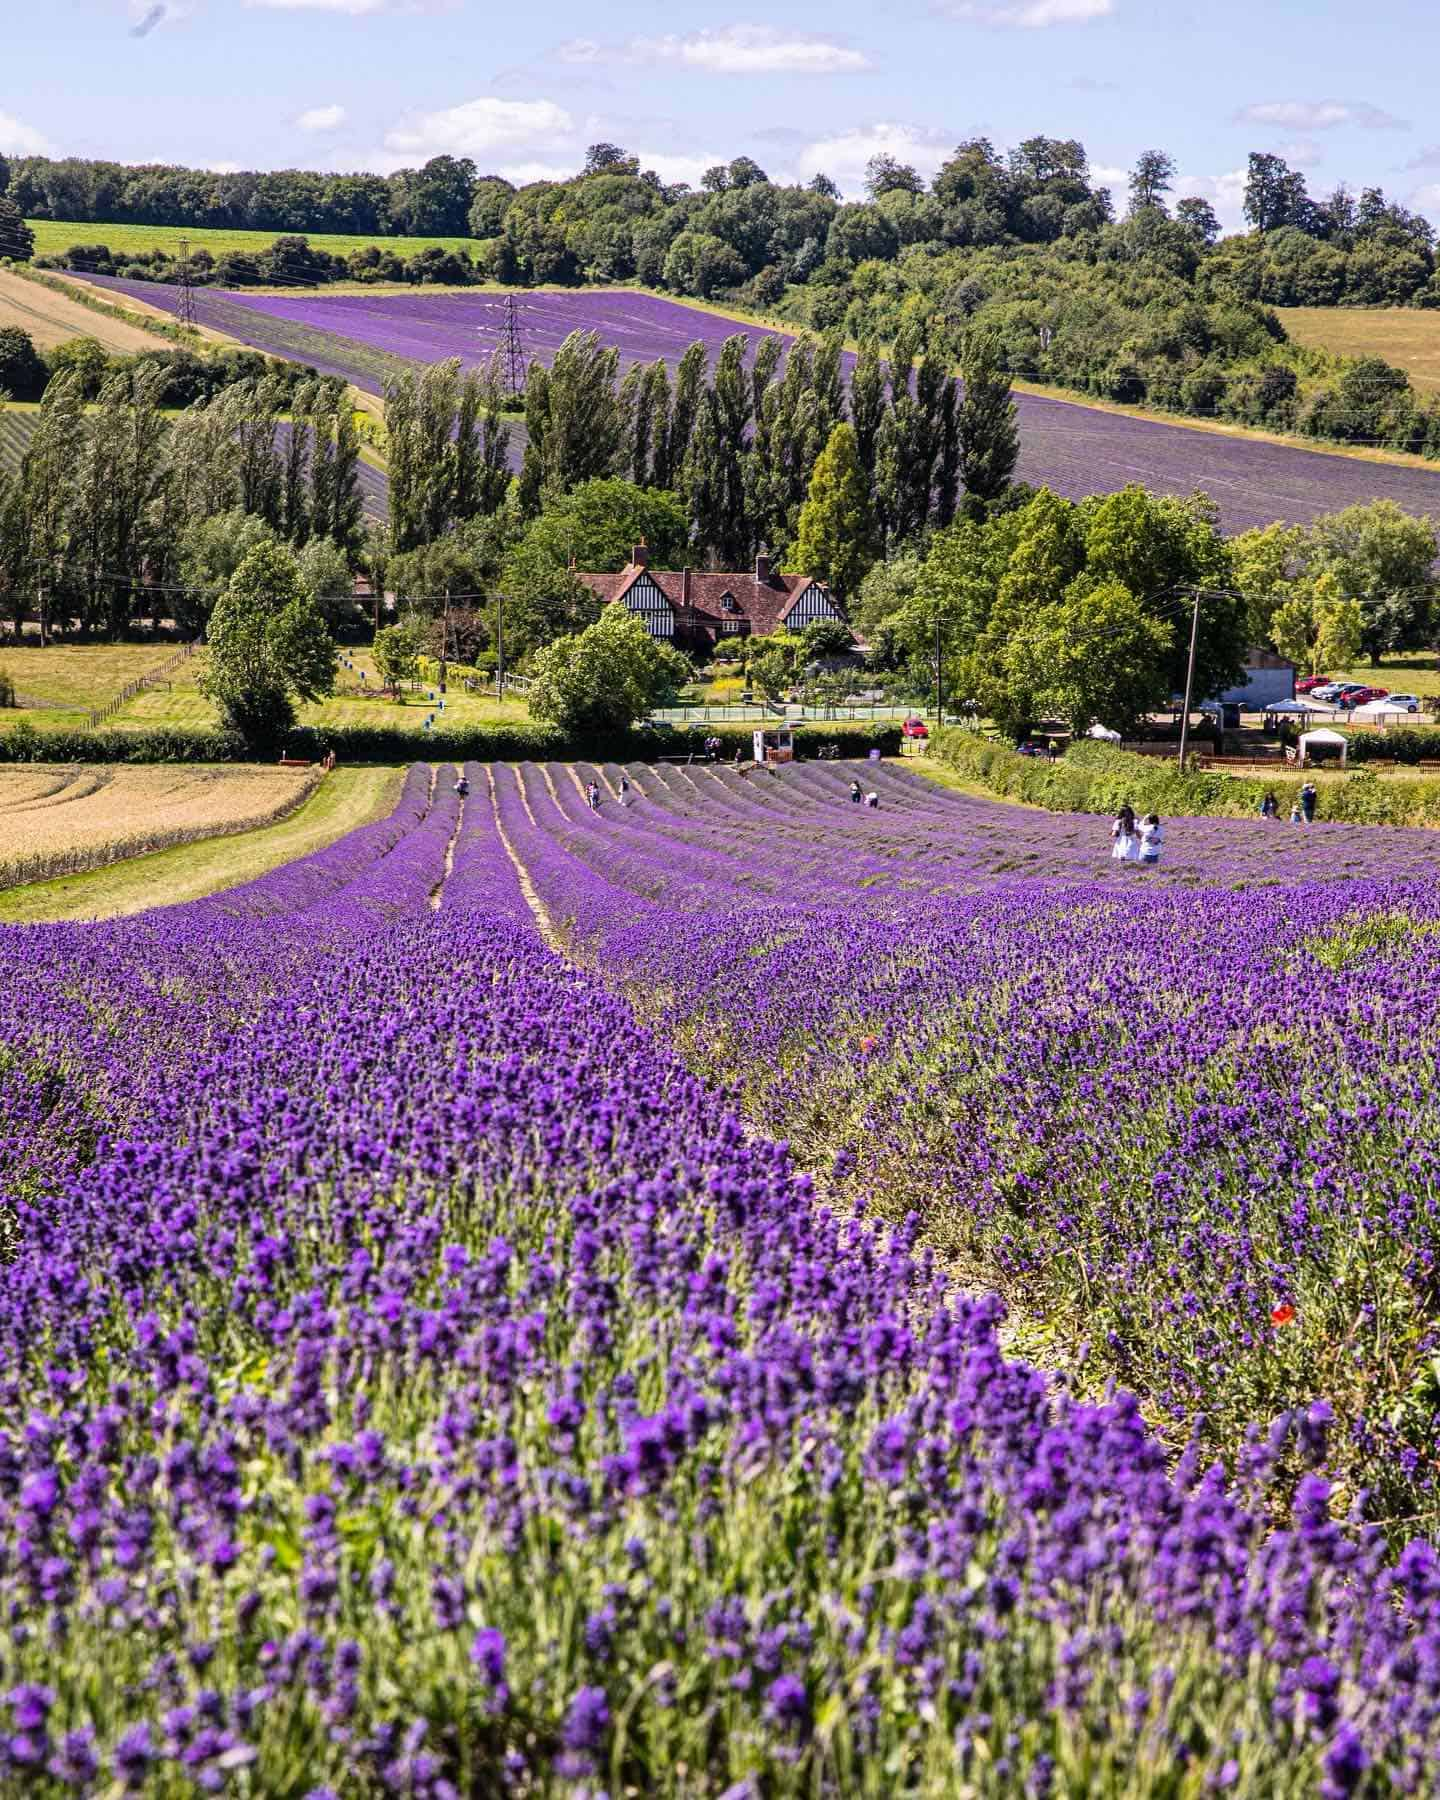 Dog-friendly Lavender Fields Near London To Visit - Castle Farm Lavender Fields